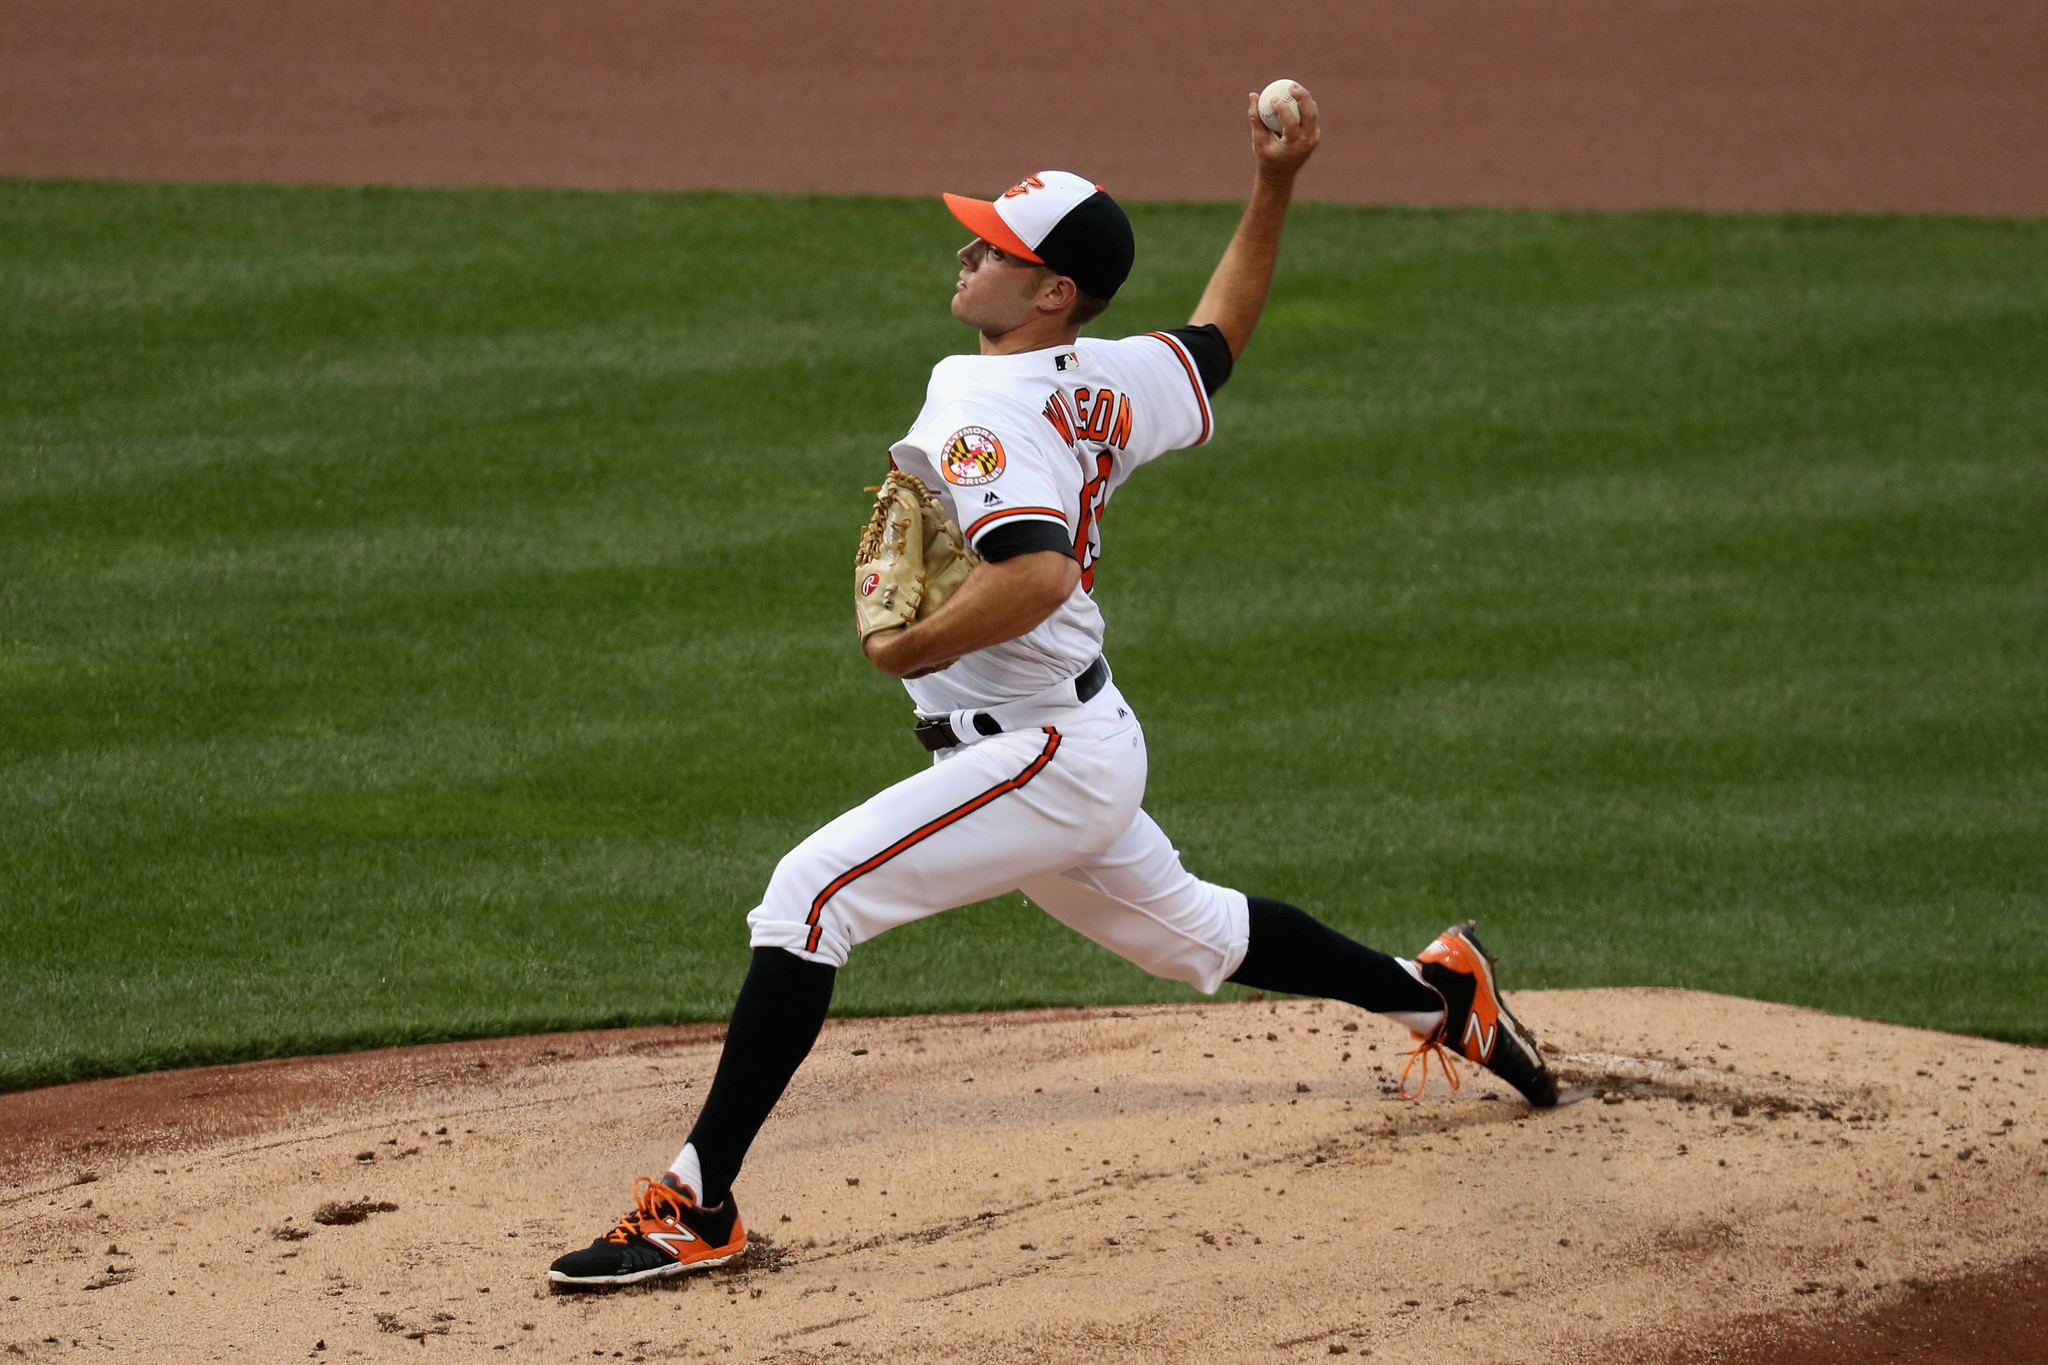 Bal-orioles-tyler-wilson-earns-manager-s-praise-for-important-if-infrequent-bullpen-role-20160419